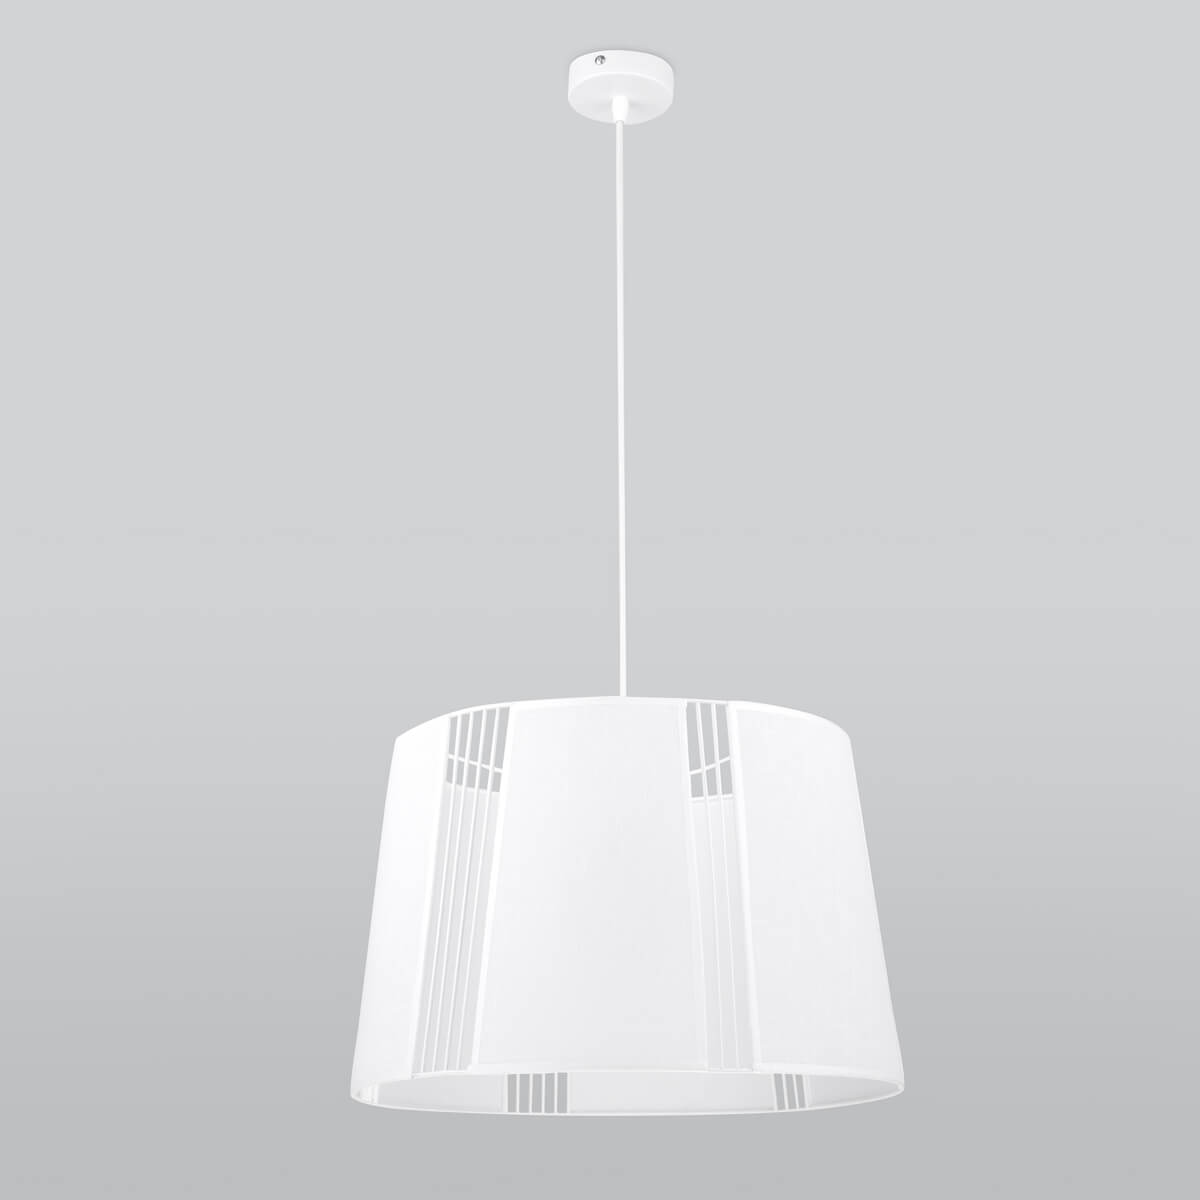 Светильник TK Lighting 2573 Carmen White Carmen White недорого